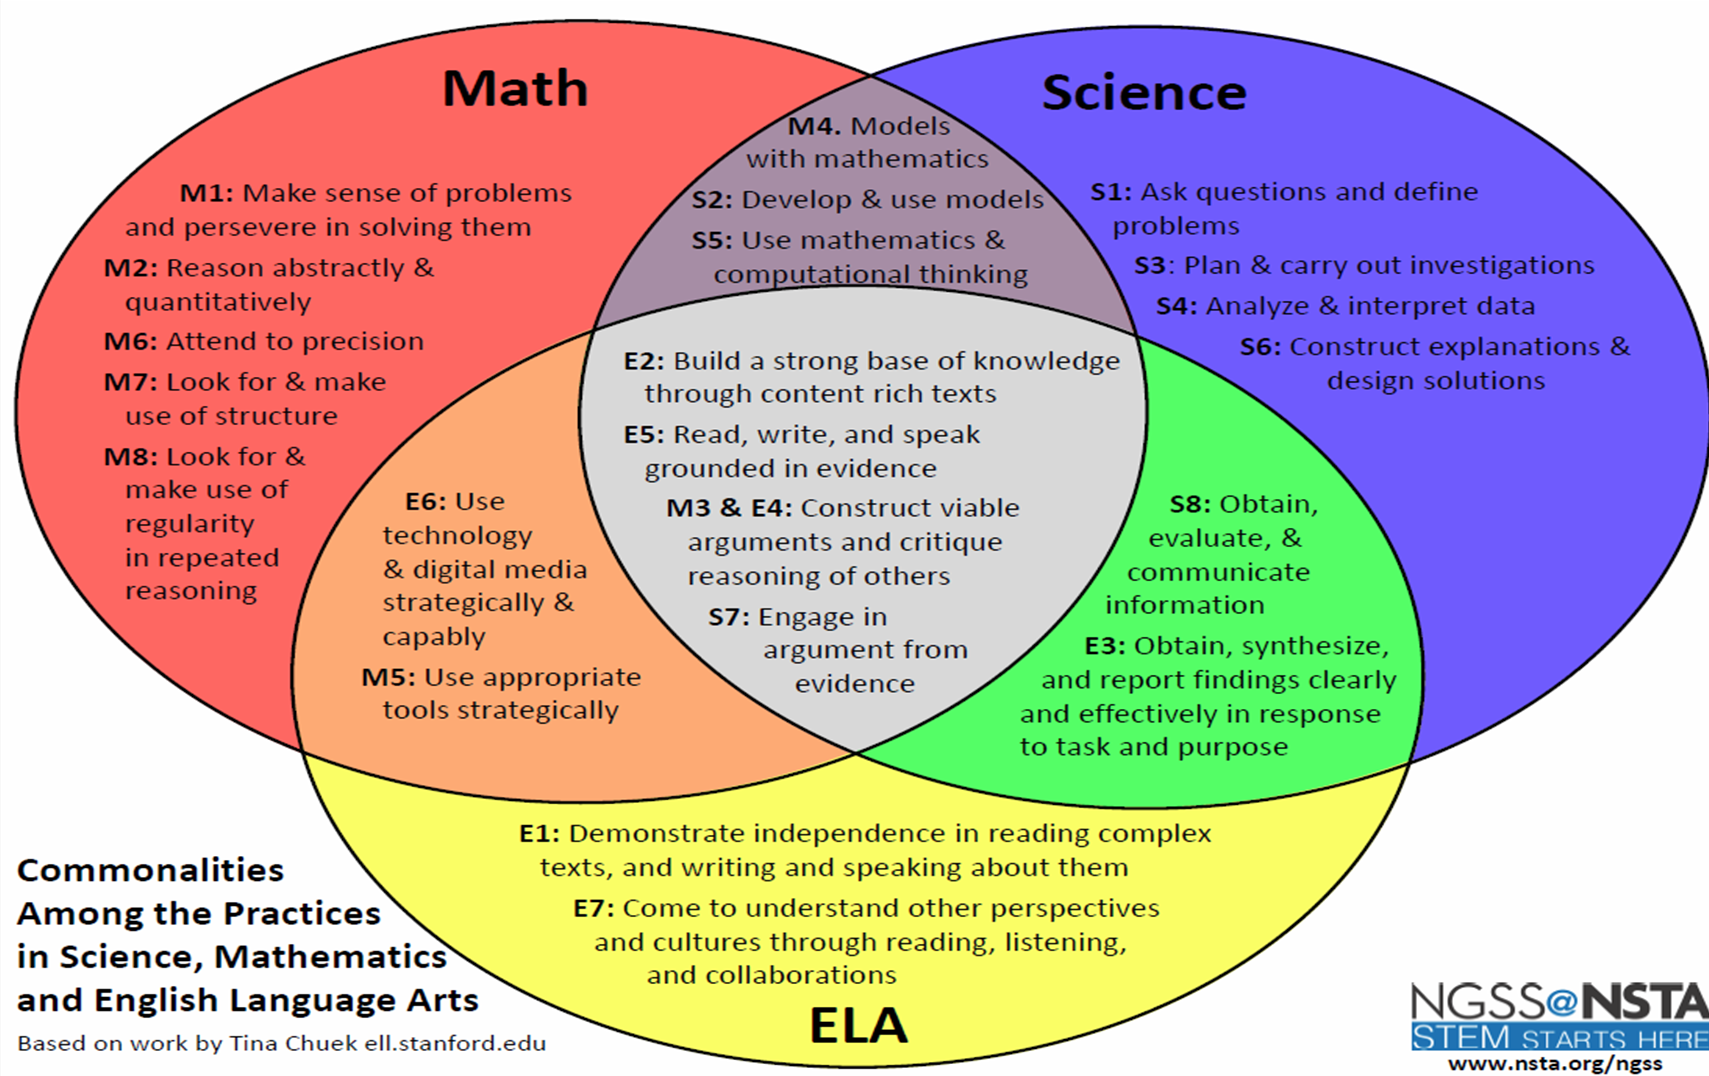 describe the commonalities between math and science Connections between practices in ngss, common core math, and  science and engineering practices discip linary core ideas crosscutting concepts  describe, test .